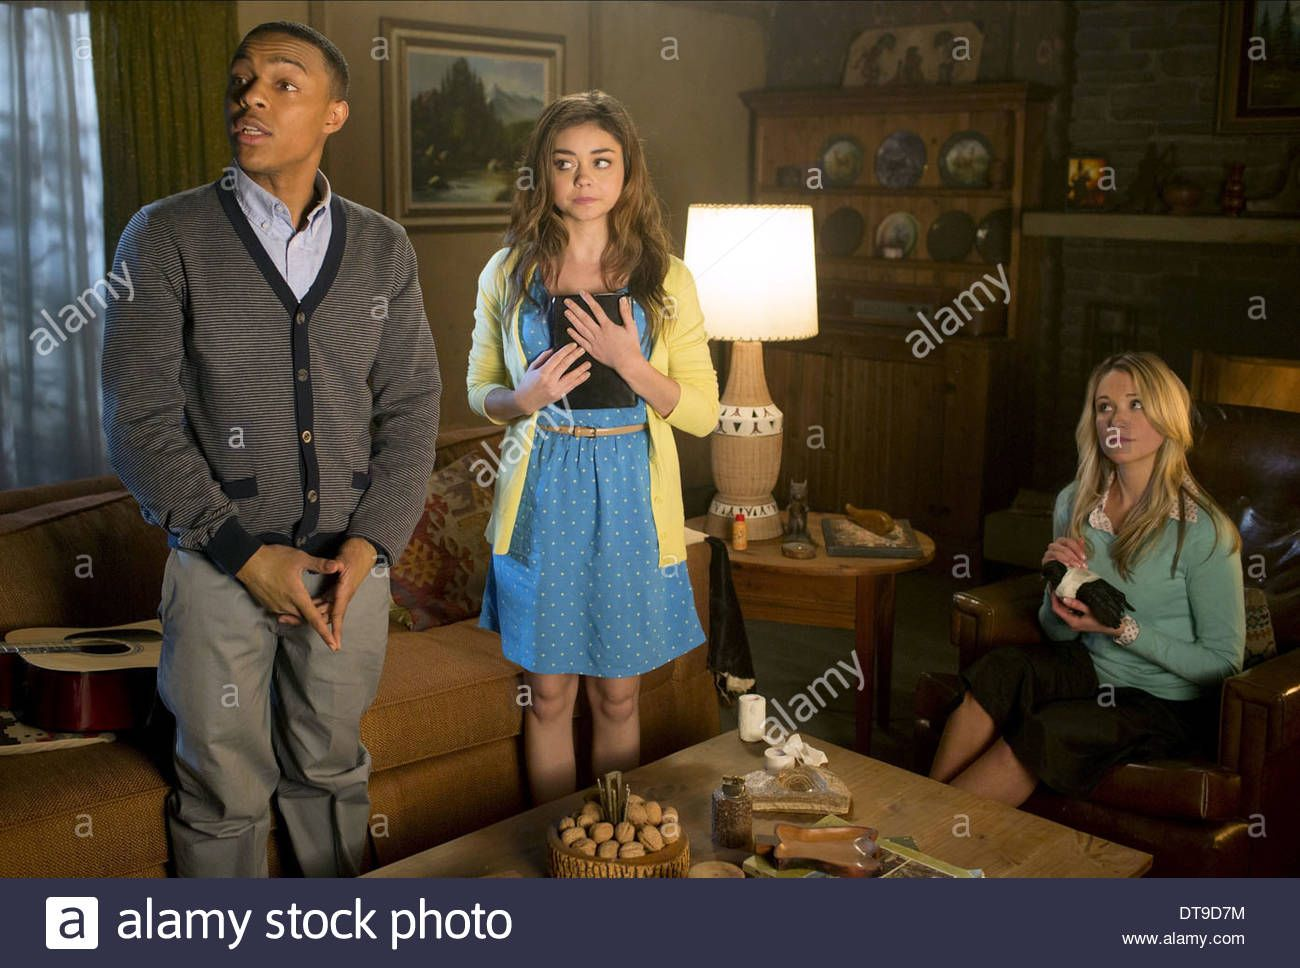 Download This Stock Image Bow Wow Sarah Hyland Katrina Bowden Scary Movie 5 2013 Dt9d7m From Alamy S Library O Scary Movie 5 Sarah Hyland Katrina Bowden